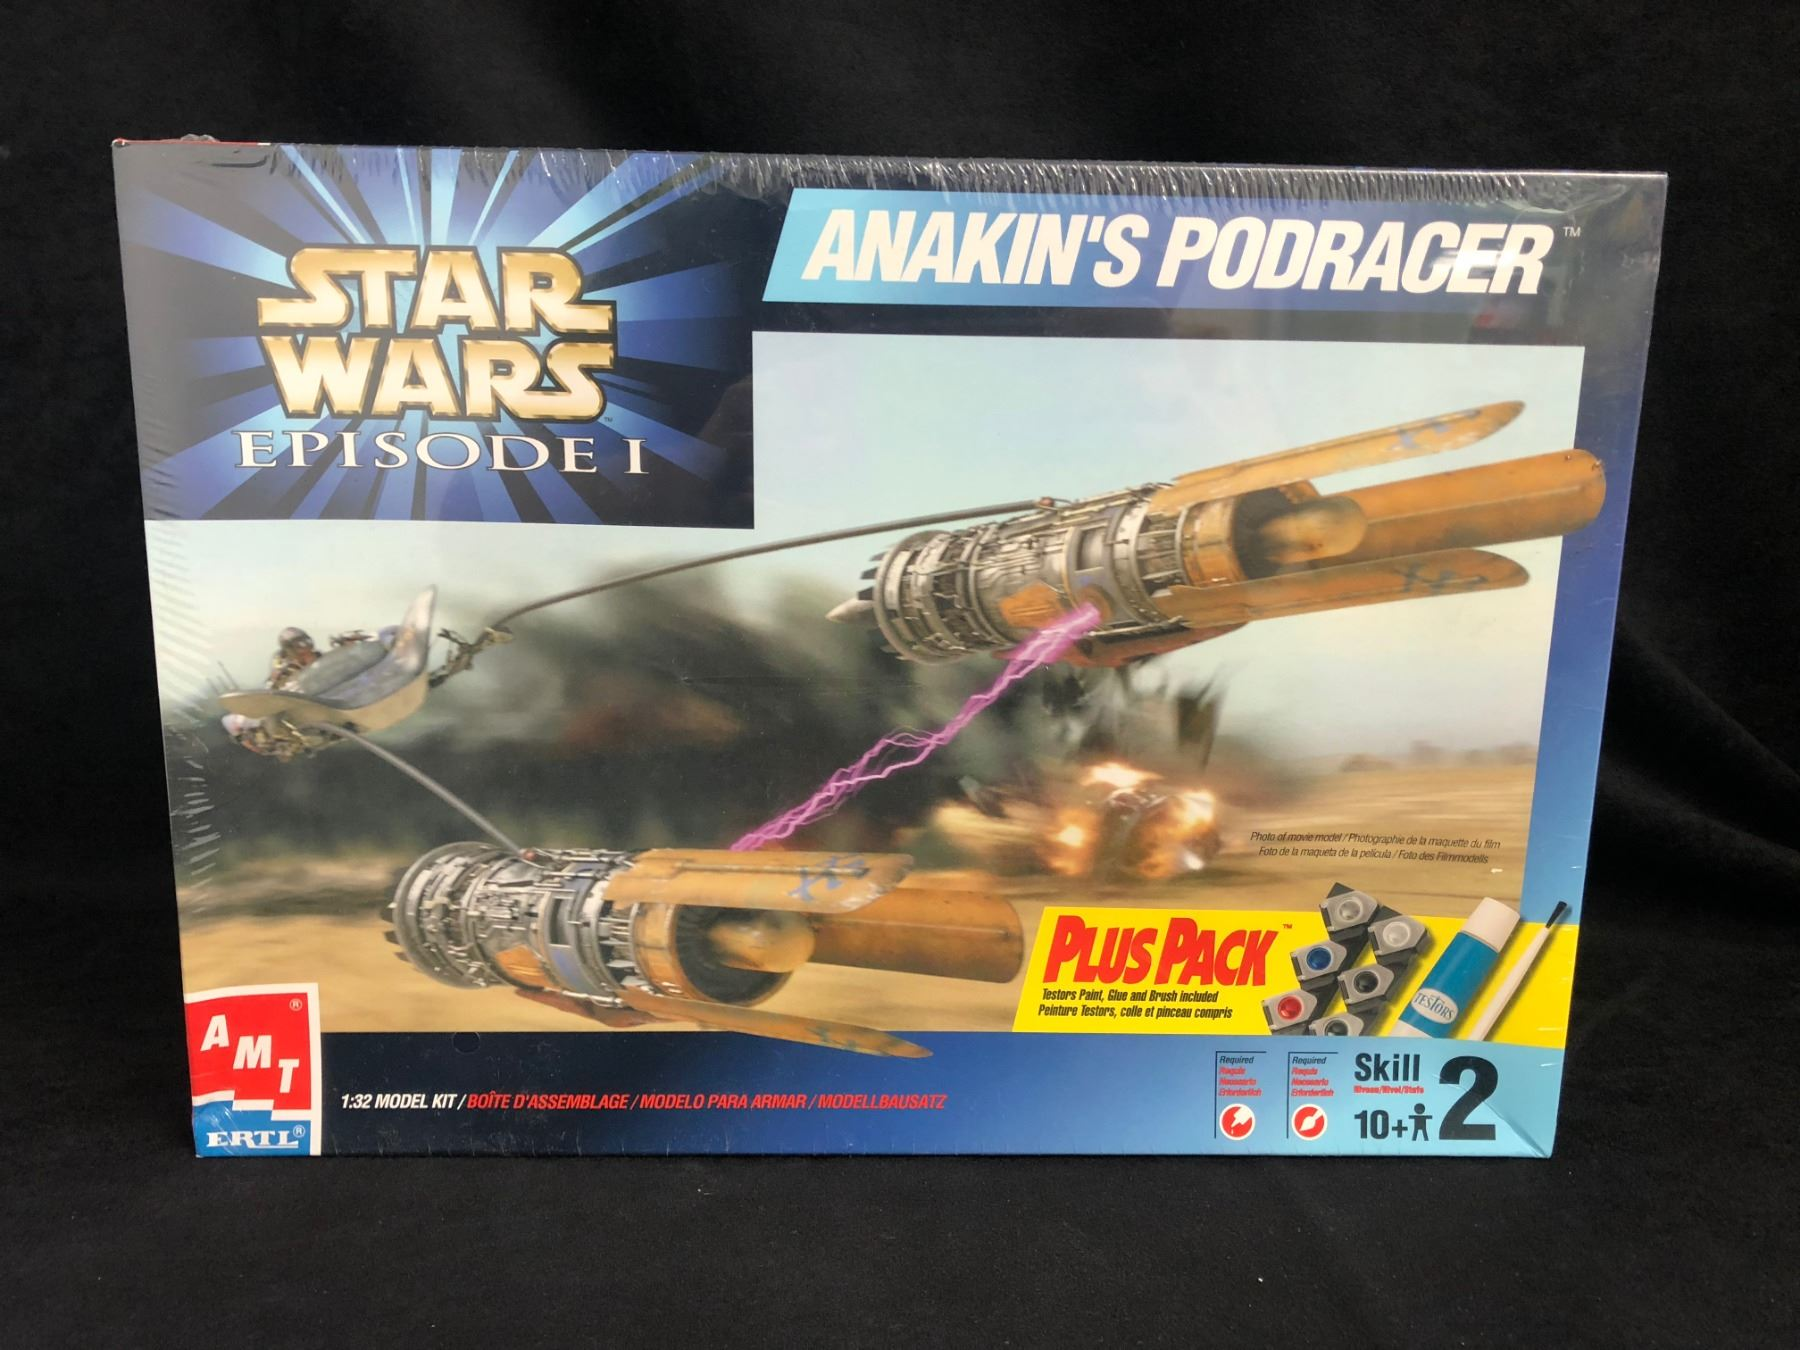 AMT Star Wars Anakin's Podracer 1/32 Plastic Model Kit (1999)